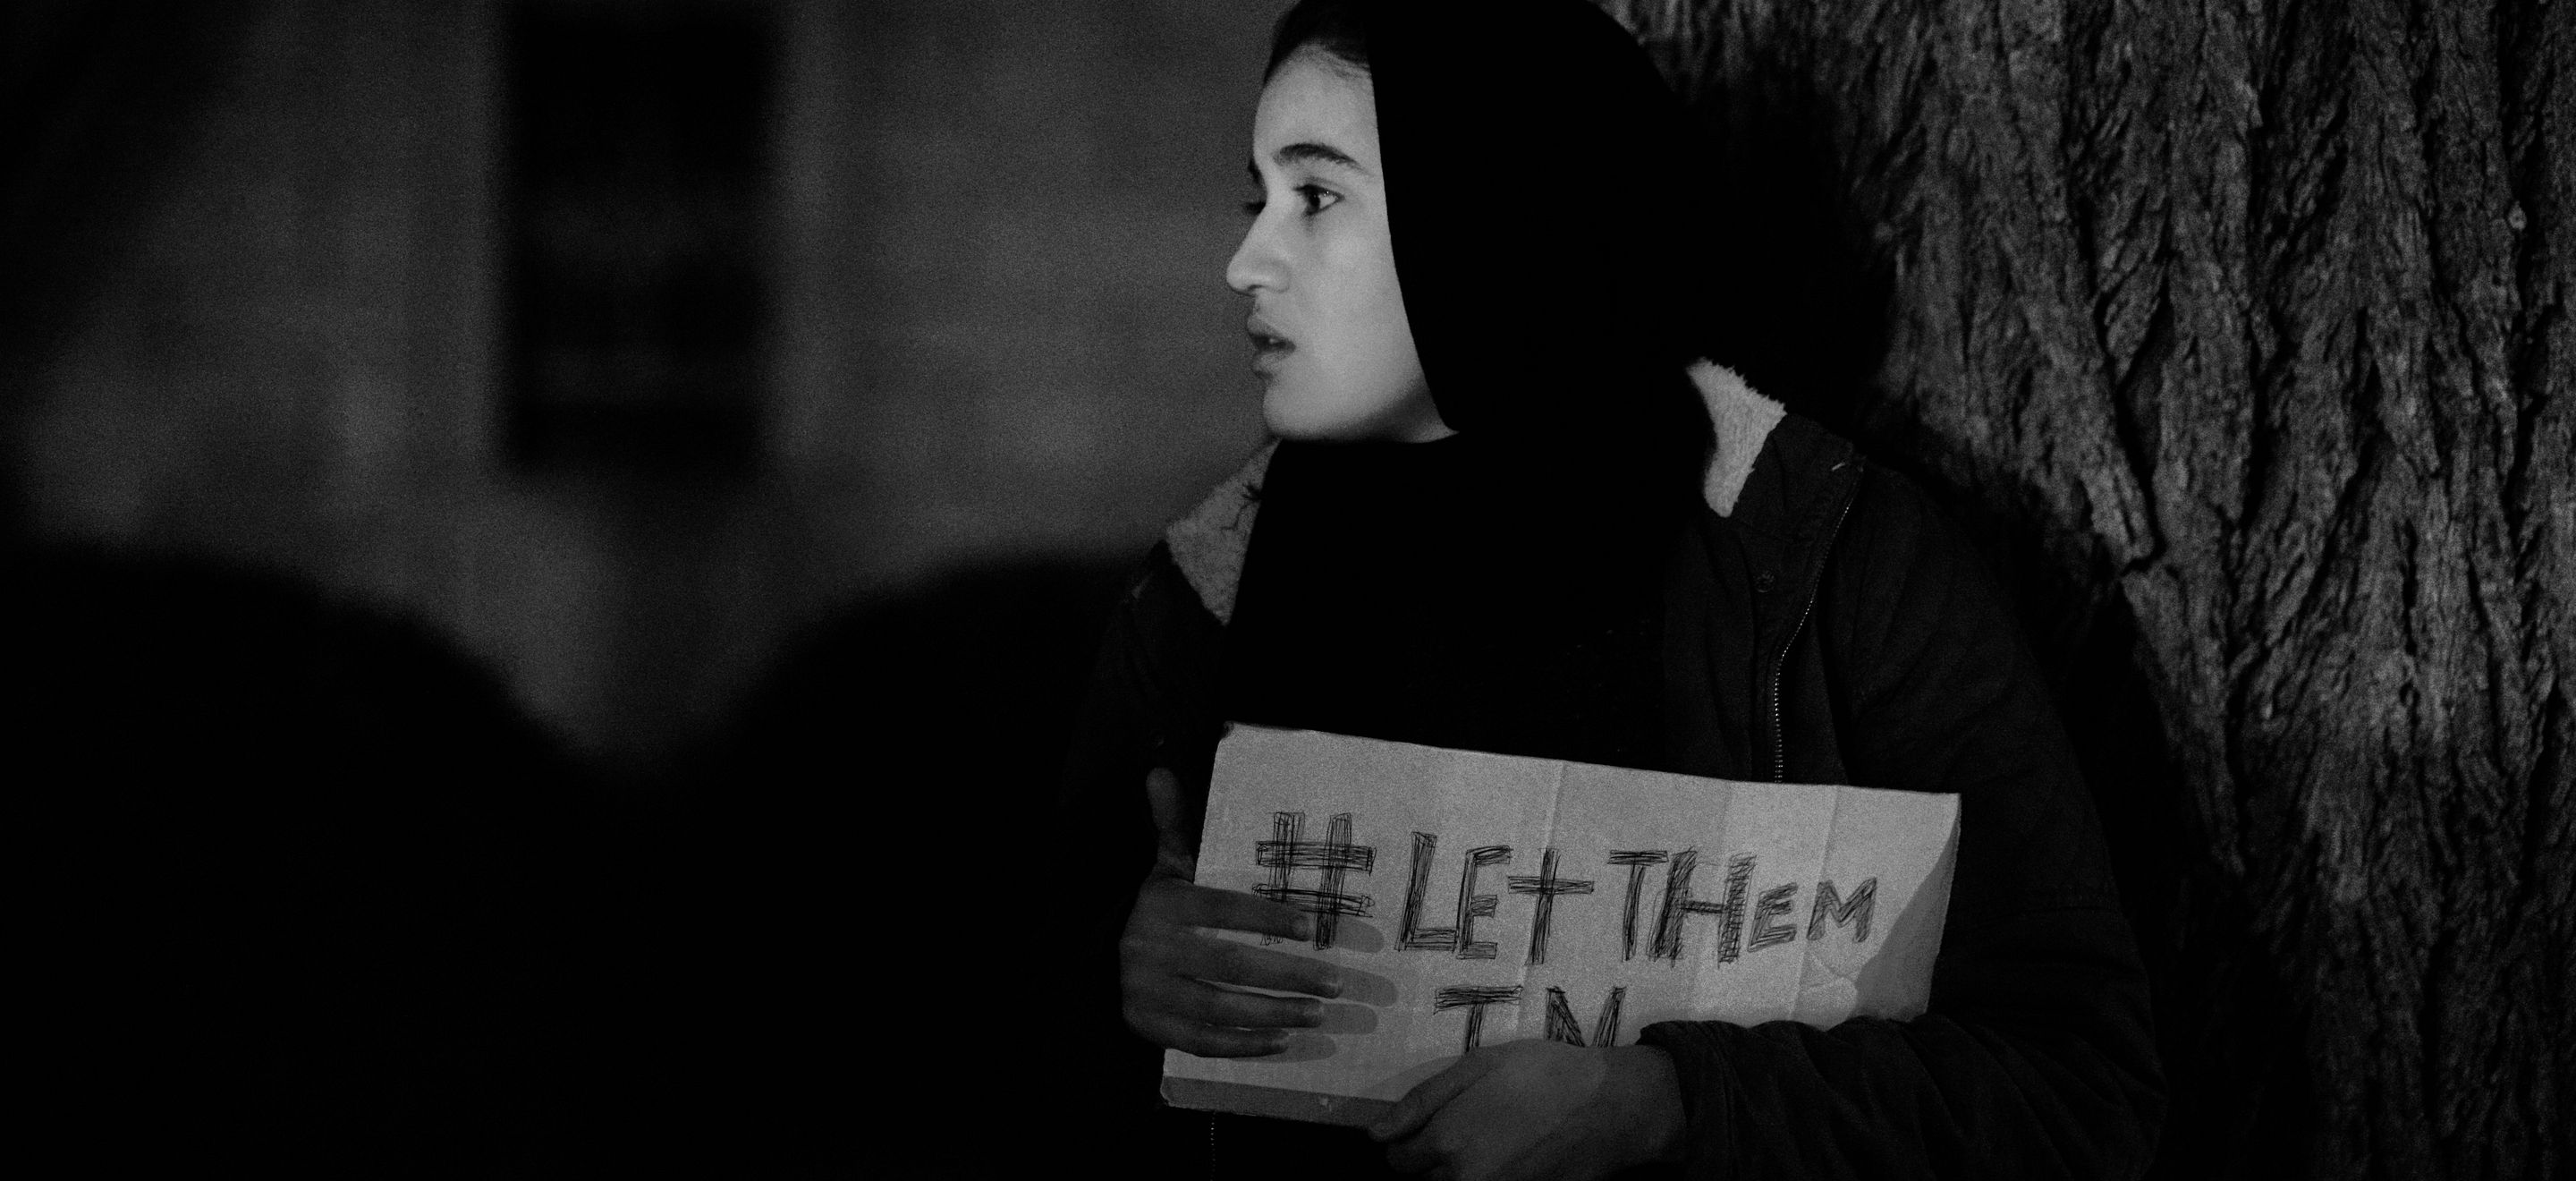 A young woman wears a black head scarf and a winter jacket. She holds a cardboard sign reading #LetThemIn close to her body.